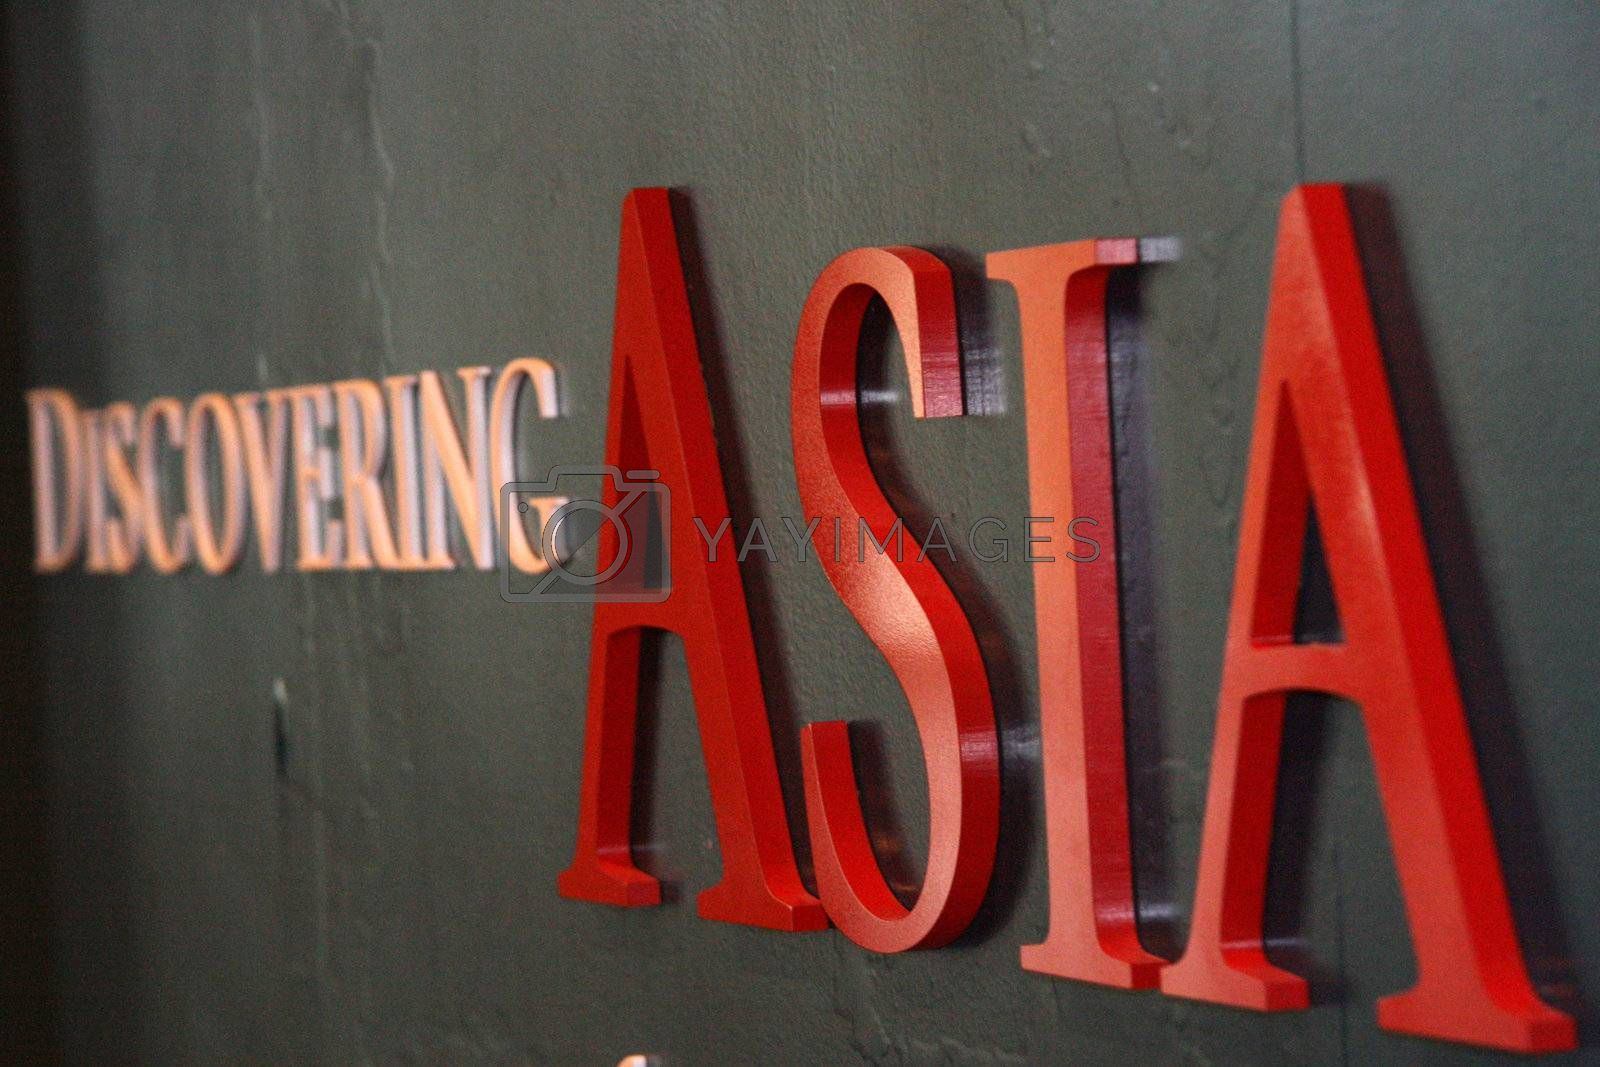 Discovering Asia Sign